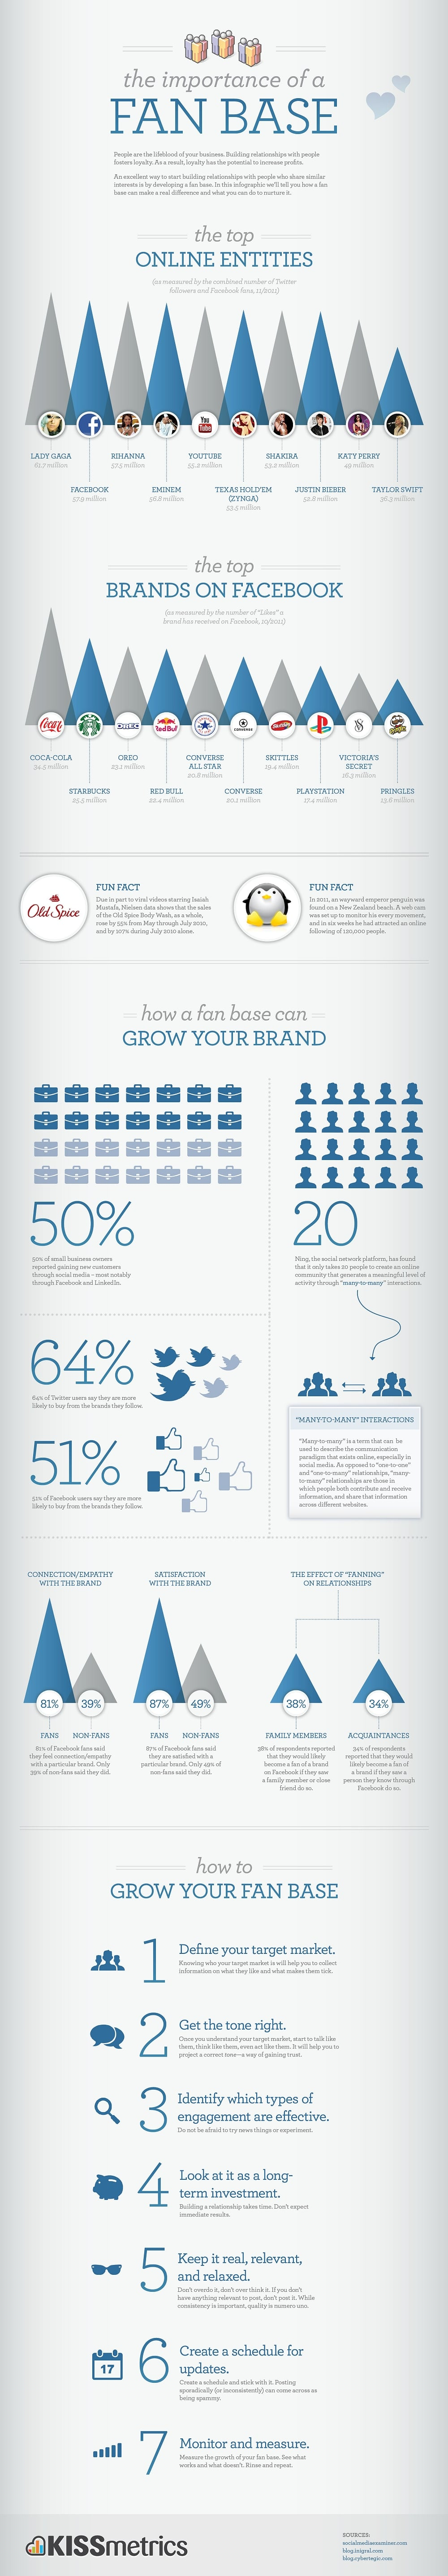 7 Ways To Grow Your Fan Base On Facebook [Infographic]